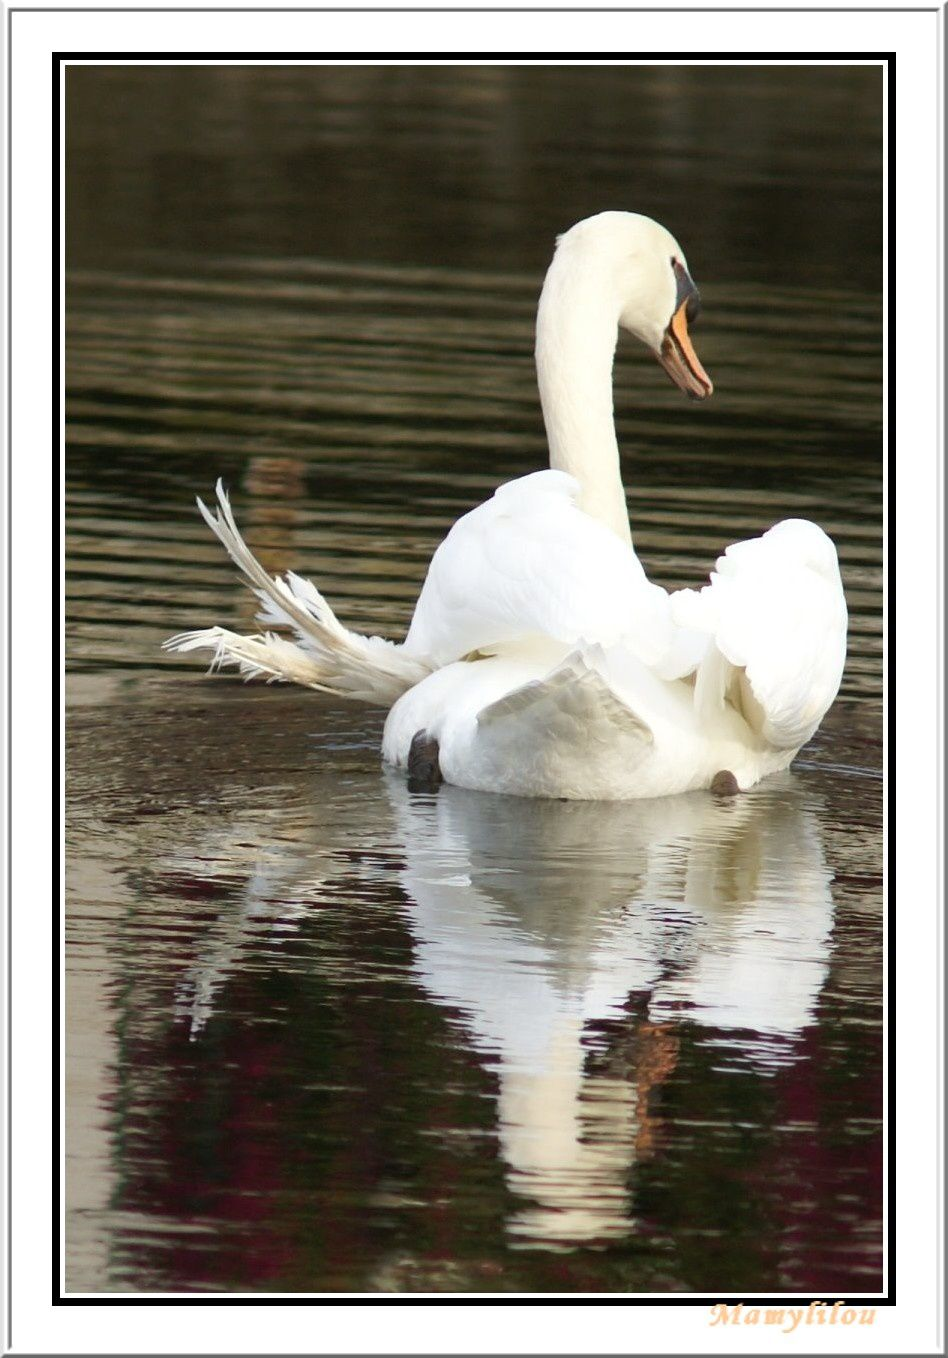 http://a6.idata.over-blog.com/3/17/45/90/Photos---coucou-du-haiku/Le-cygne.jpg